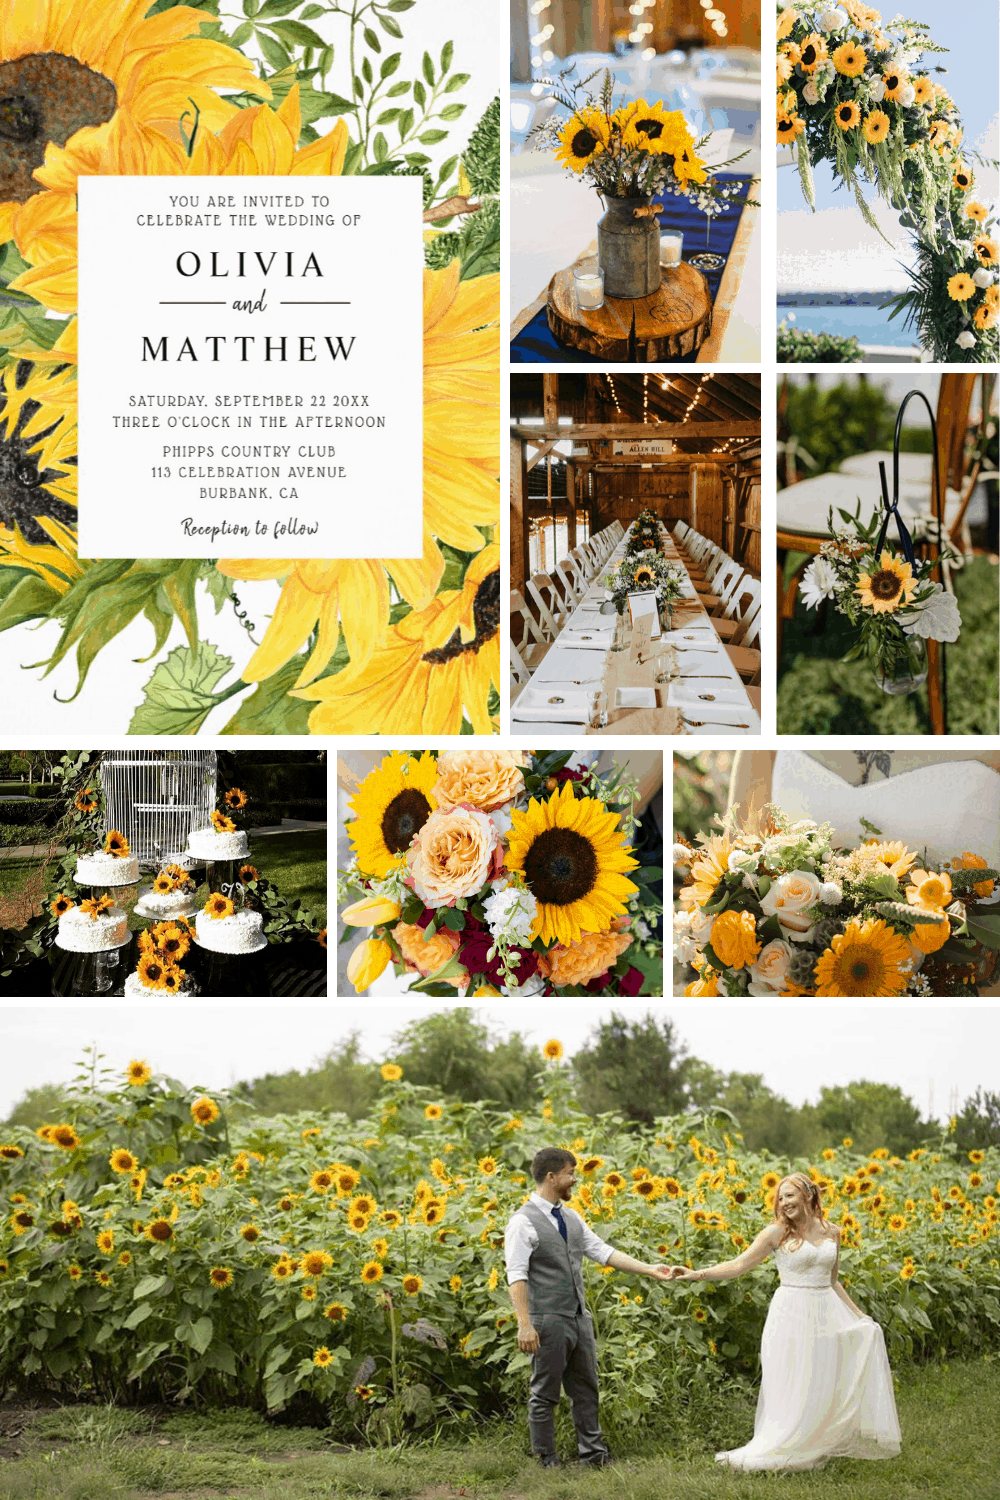 You can't fail to be inspired by all these gorgeous sunflower wedding ideas